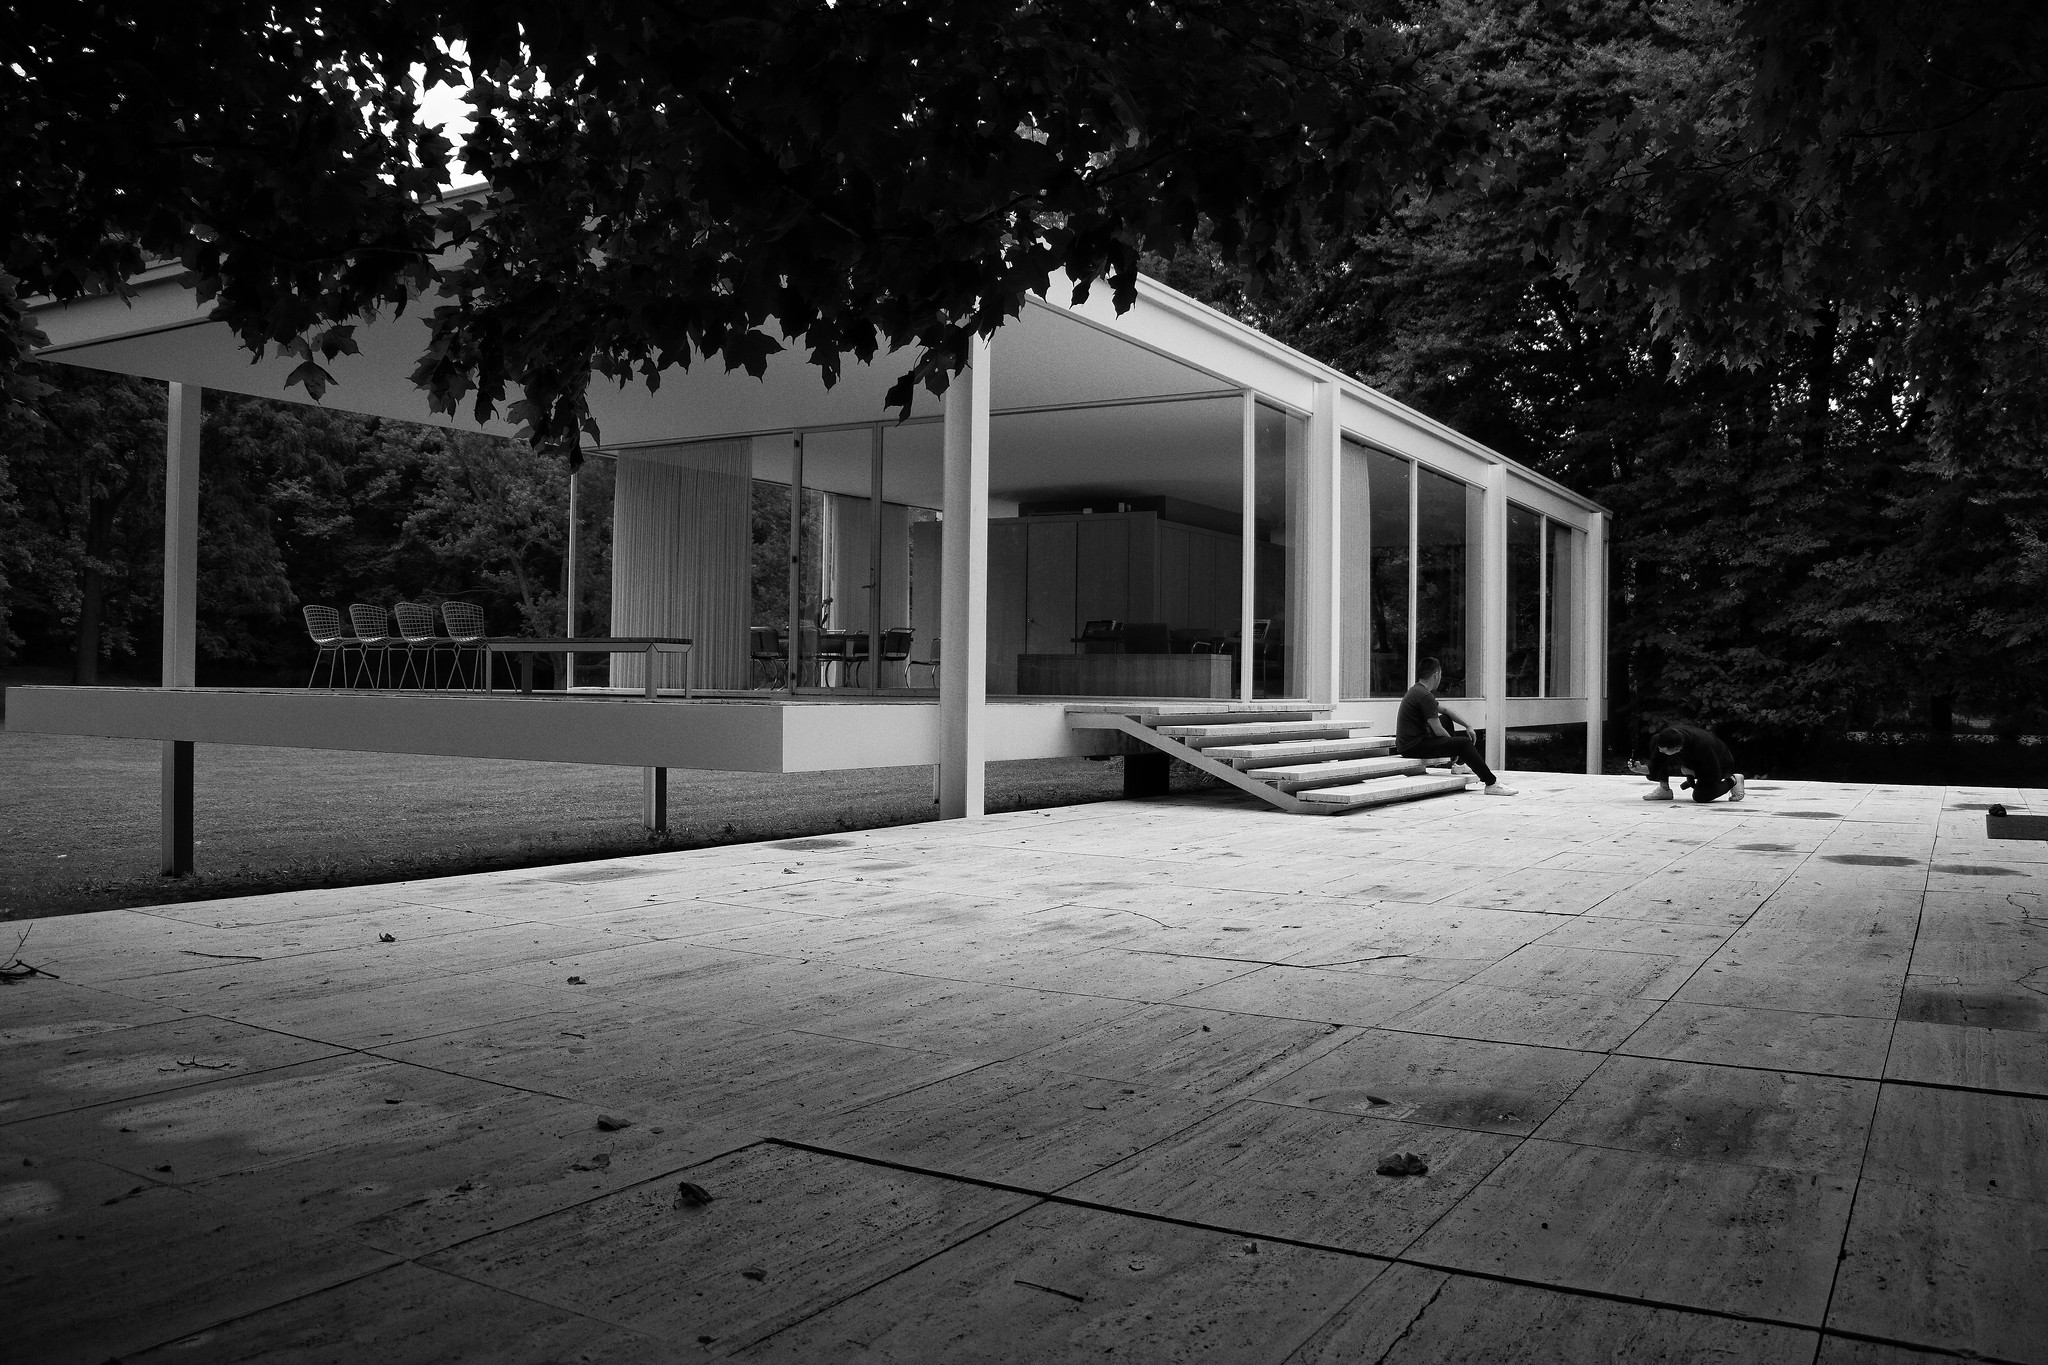 The exterior of a modern mid-century home is photographed in black and white.